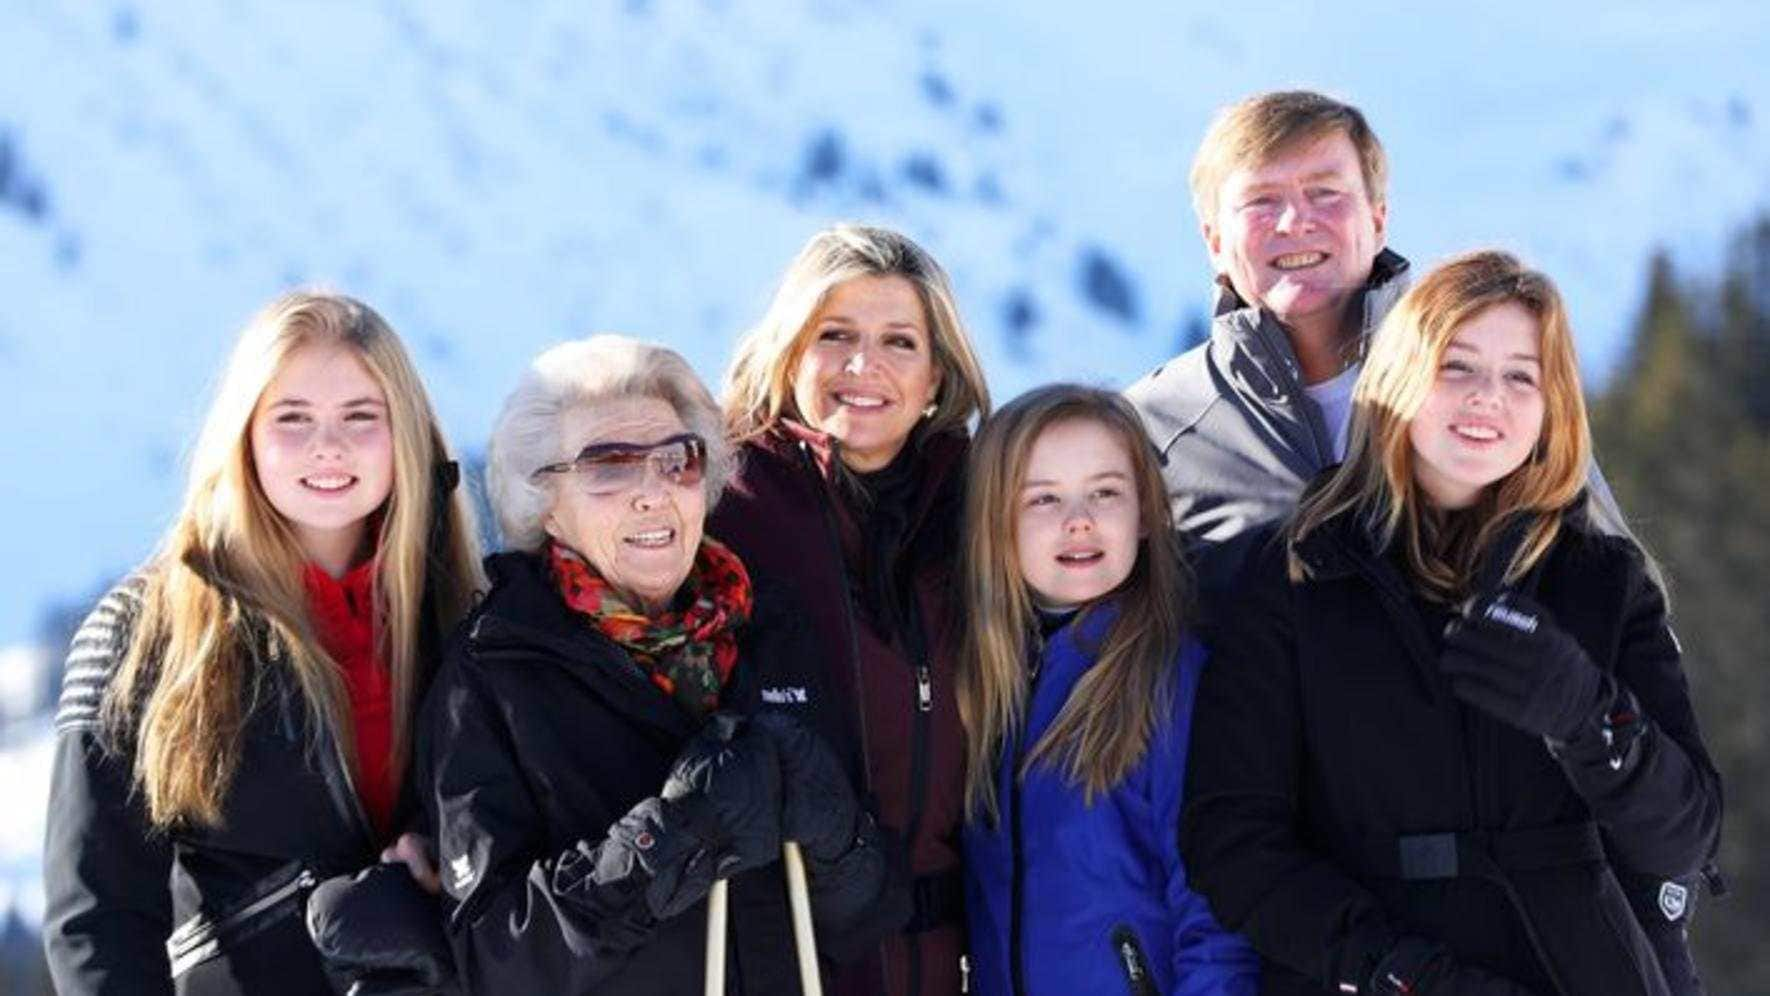 25-02-2019 Lech Queen Maxima and King Willem-Alexander and Princess Amalia and Princess Alexia and Princess Ariane pose during a photocall during the ski holiday in Lech am Arlberg, Austria. PUBLICATIONxINxGERxSUIxAUTxONLY Copyright: xPPEx